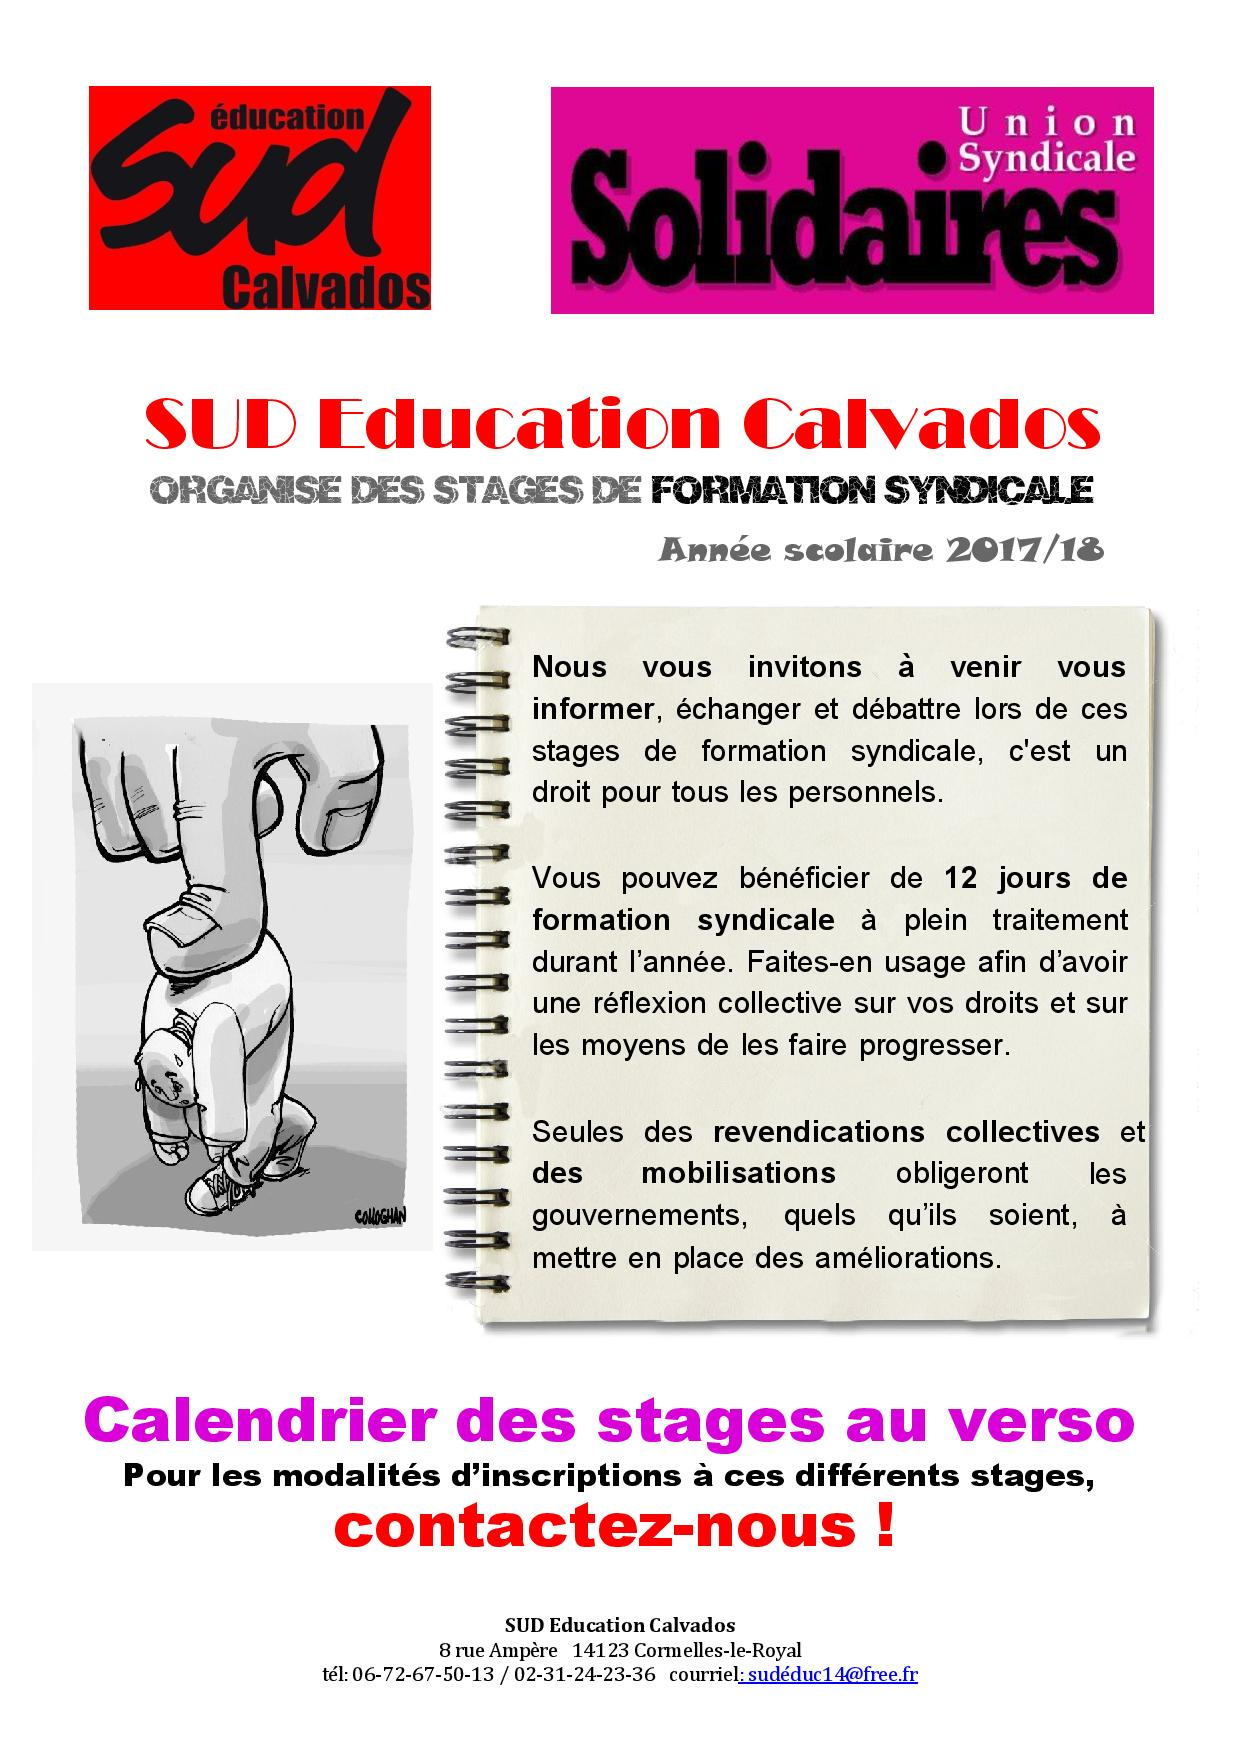 Calendrier des stages SUD Education Calvados 2017-2018